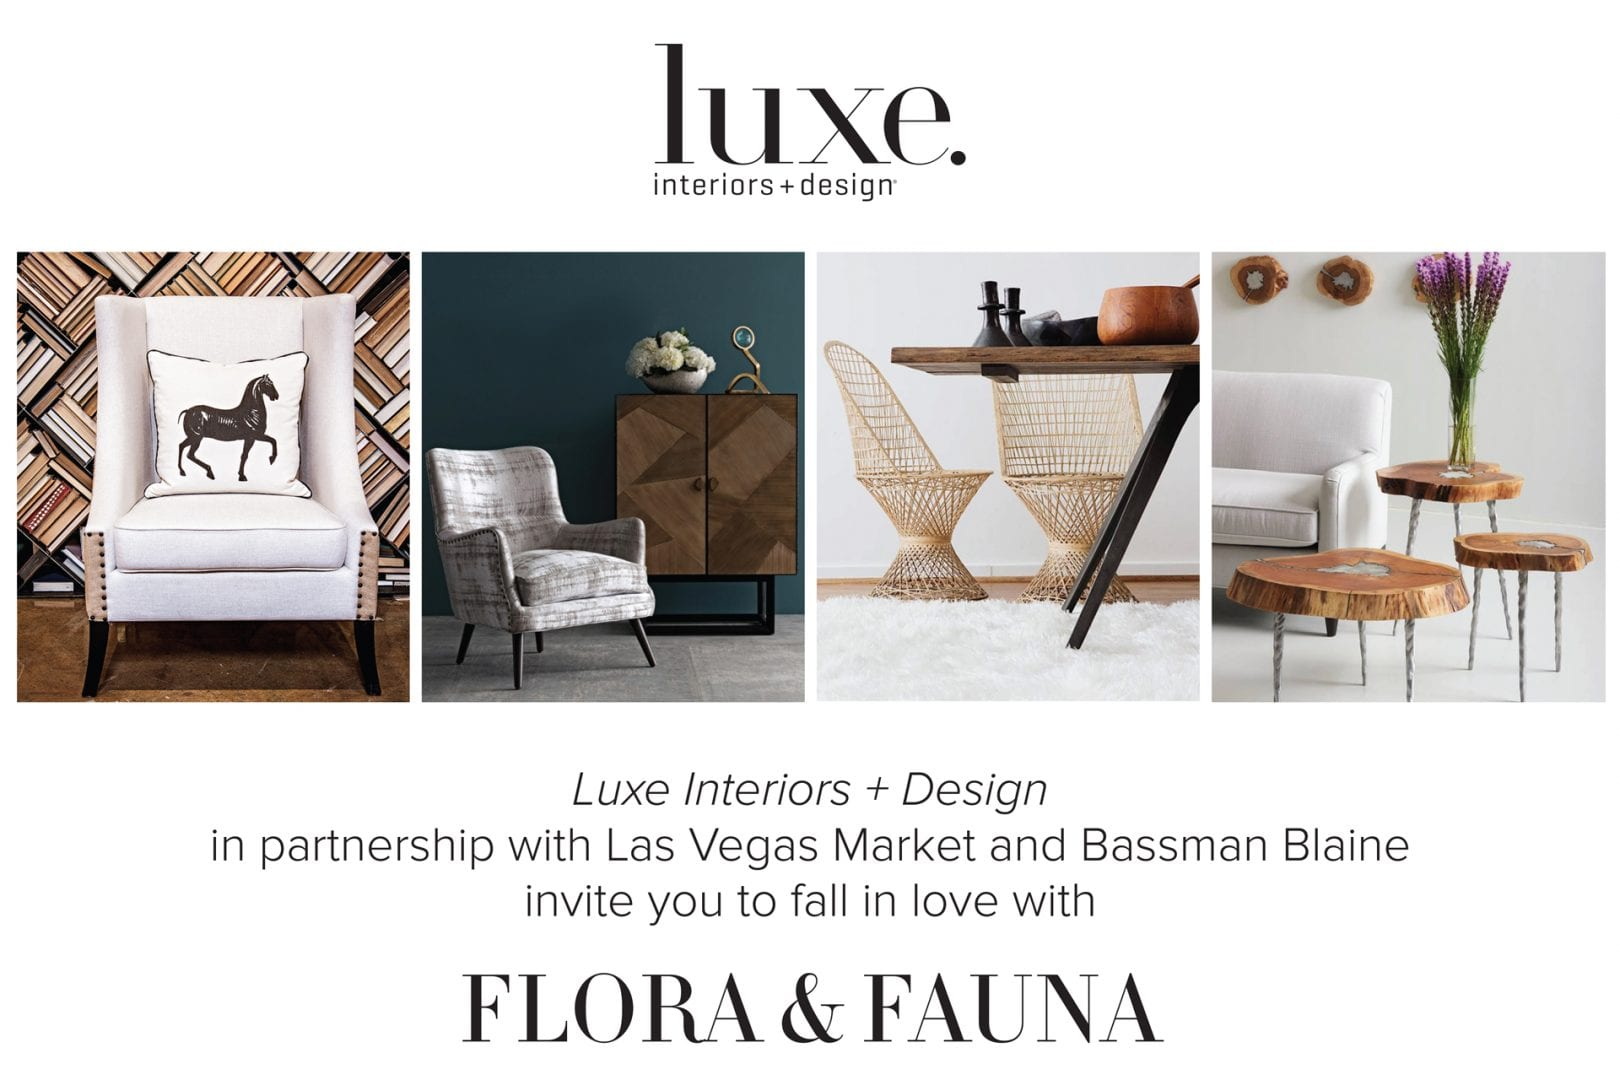 Join Us In Our Laguna Showroom During Design Centers Fall 2017 Market With Luxe Interiors A Toast To Flora Fauna Presentation